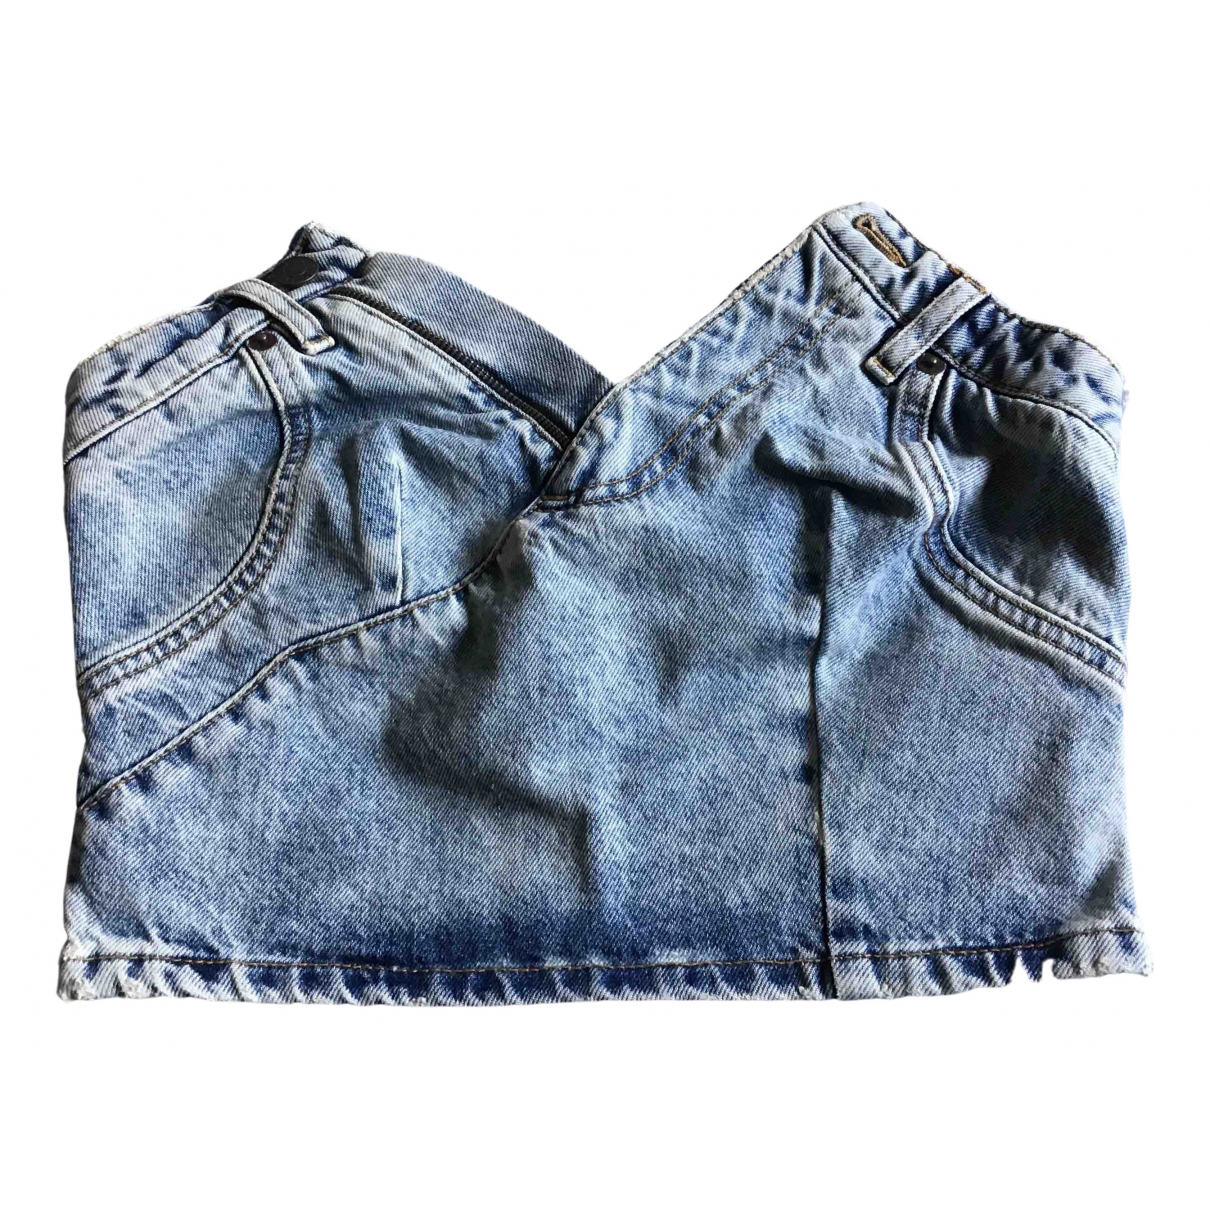 Moschino For H&m N Blue Denim - Jeans  top for Women 34 FR